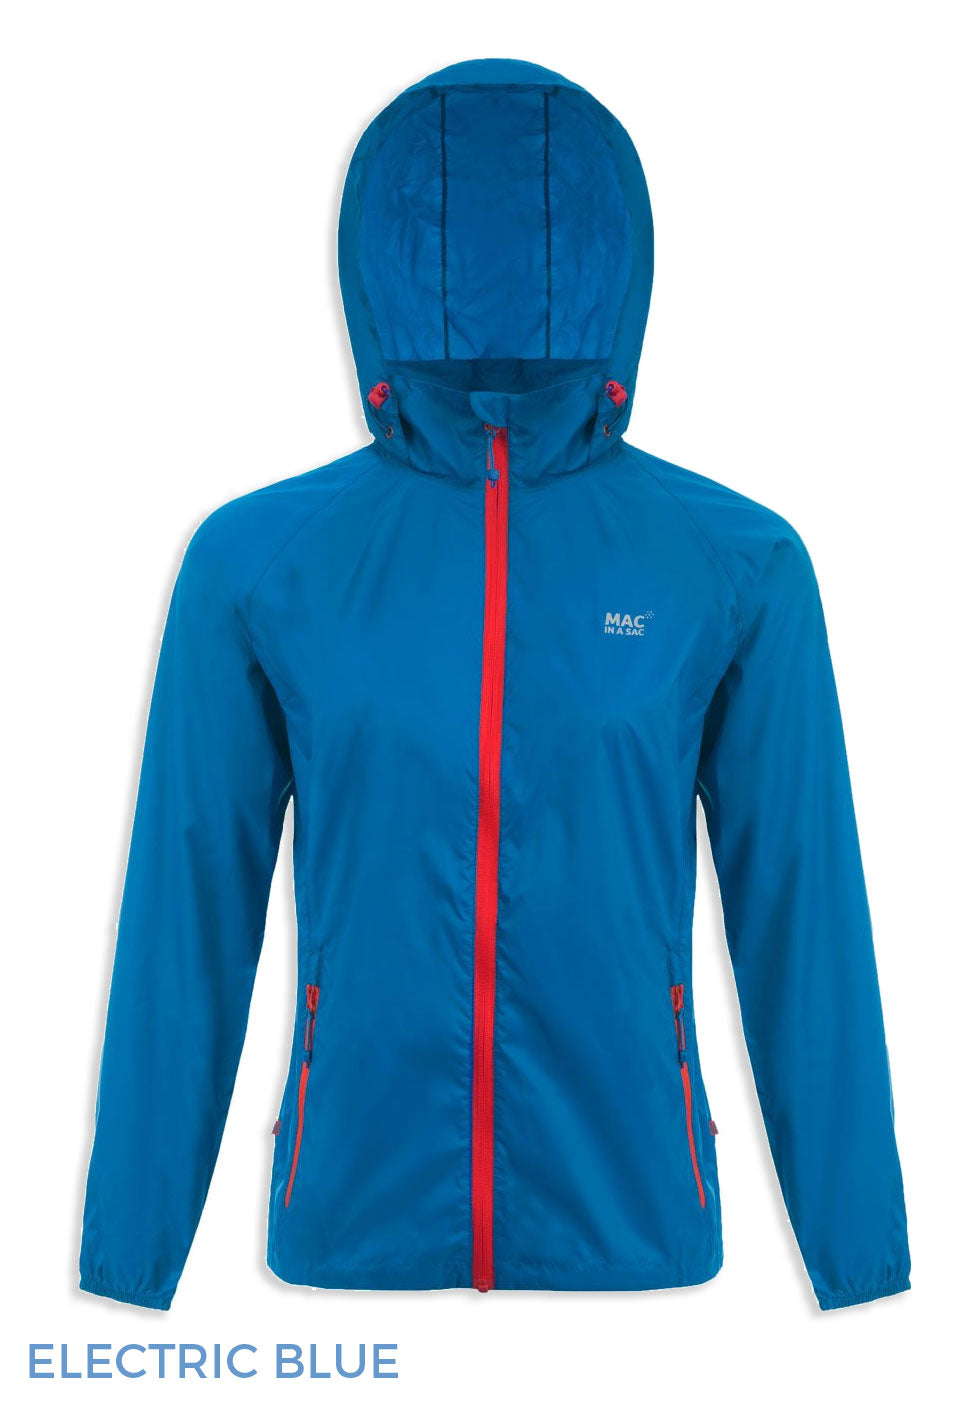 hooded electric blue Packaway Waterproof Jacket by Lighthouse